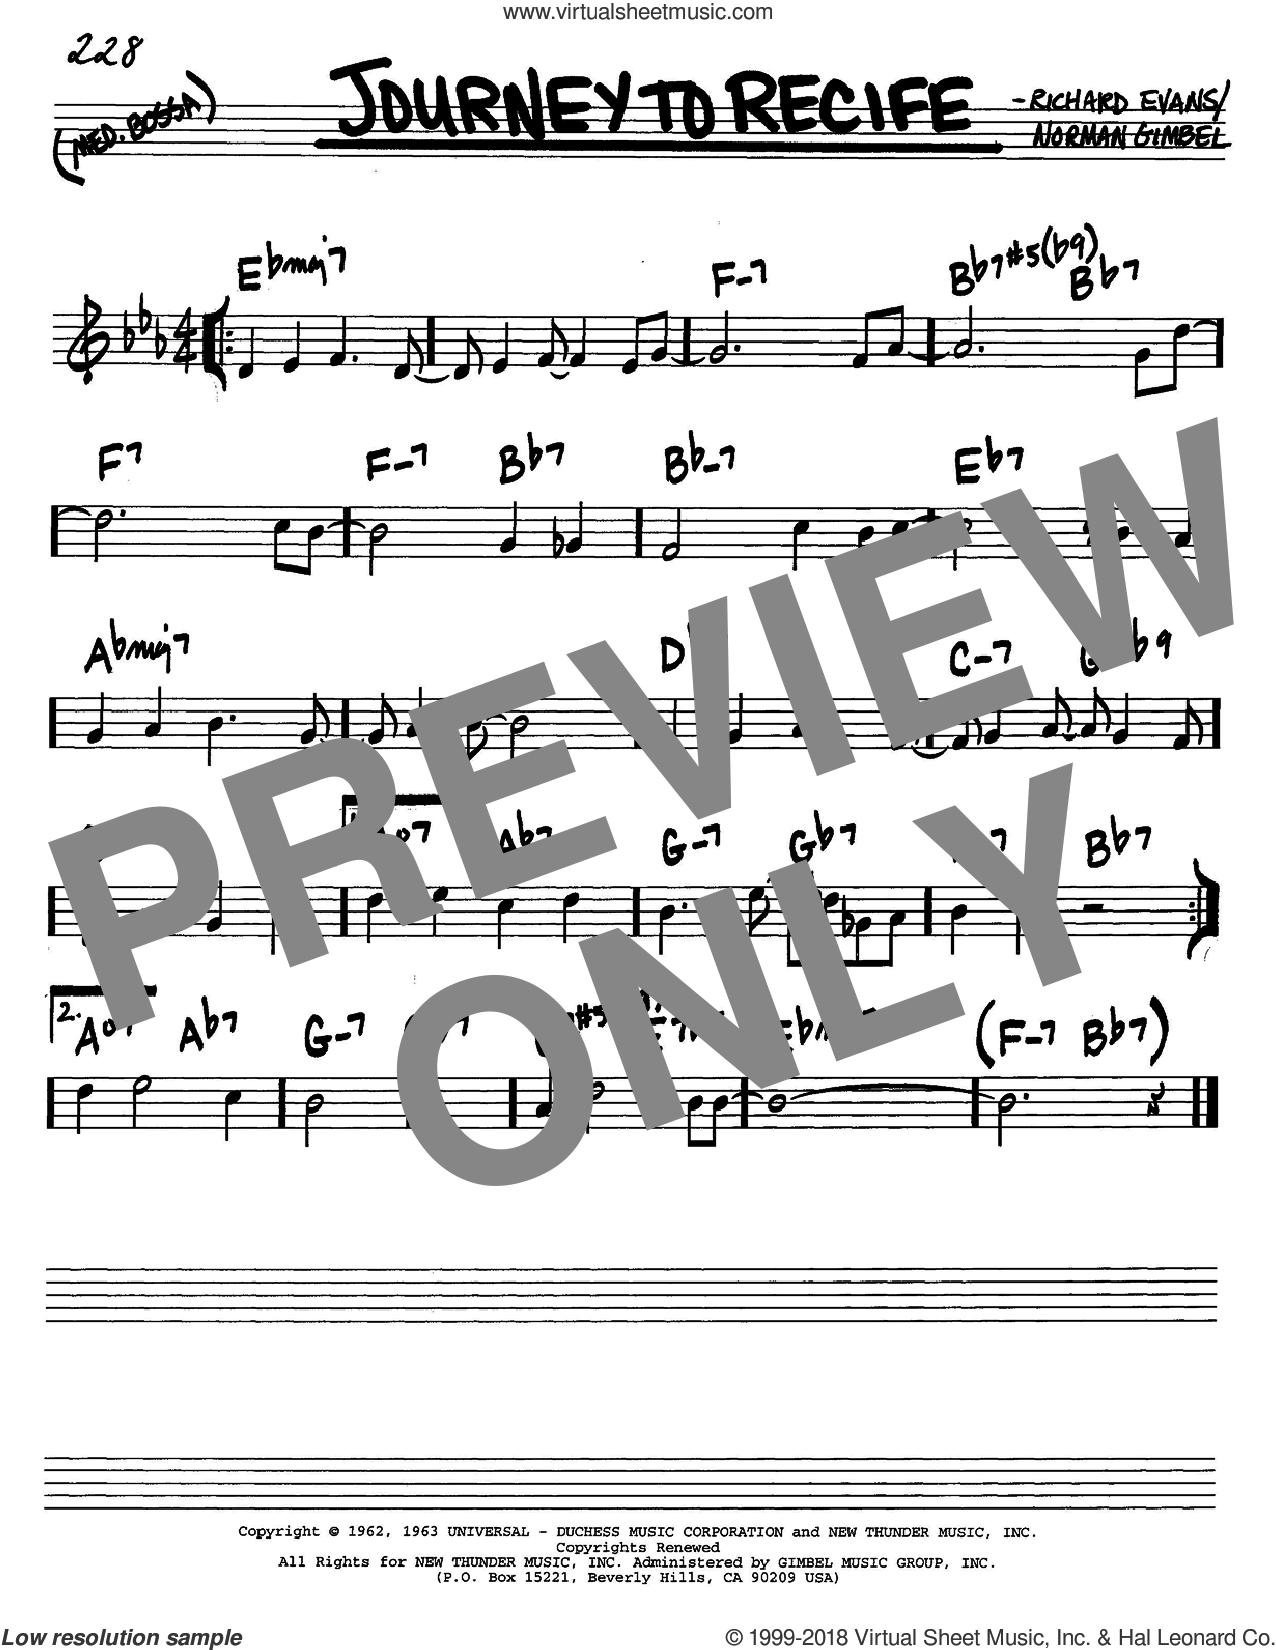 Journey To Recife sheet music for voice and other instruments (C) by Richard Evans